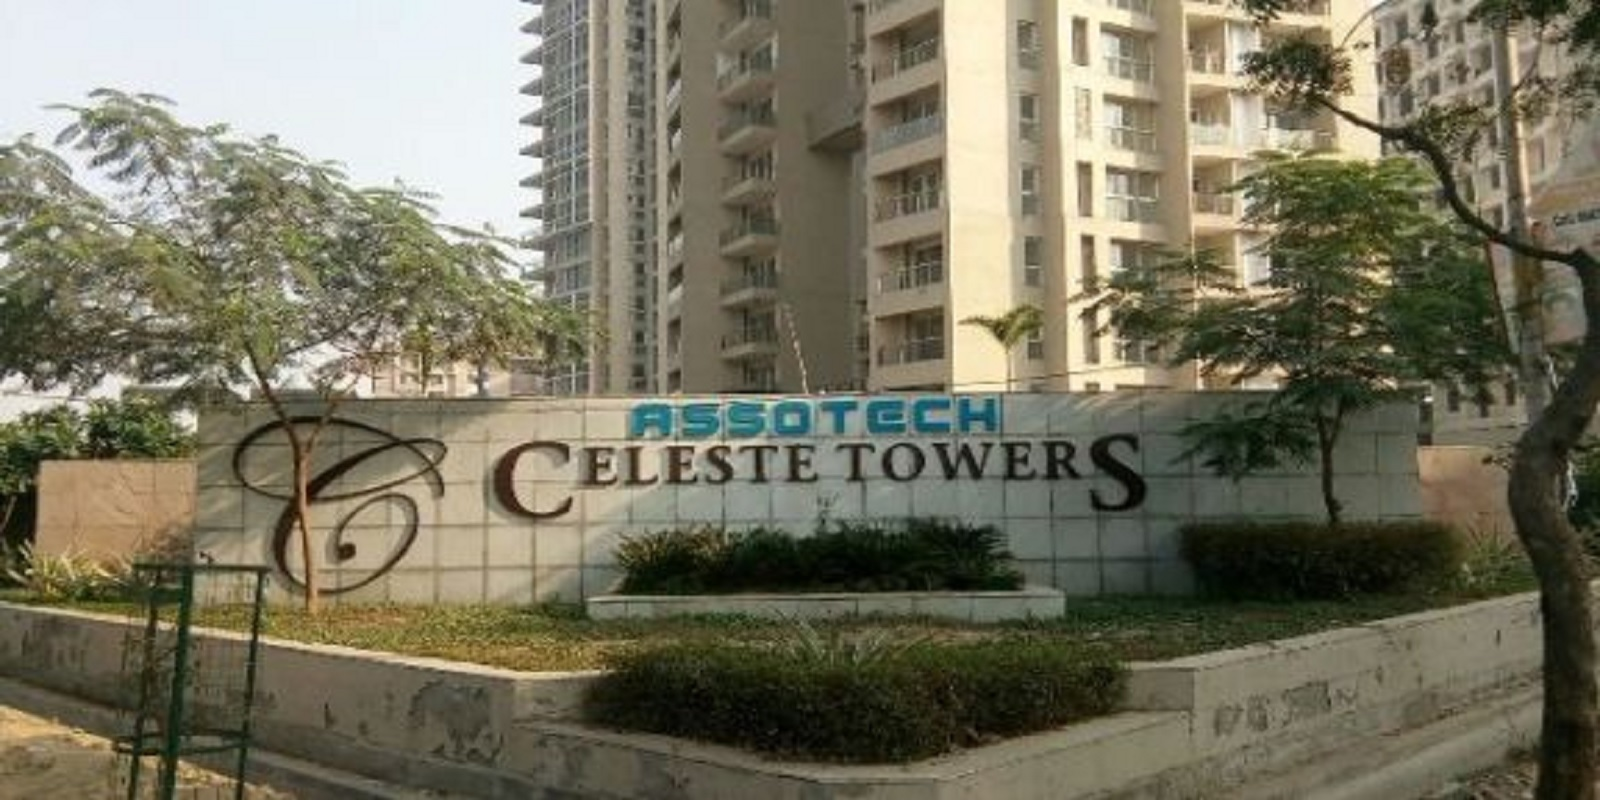 assotech celeste towers project large image9